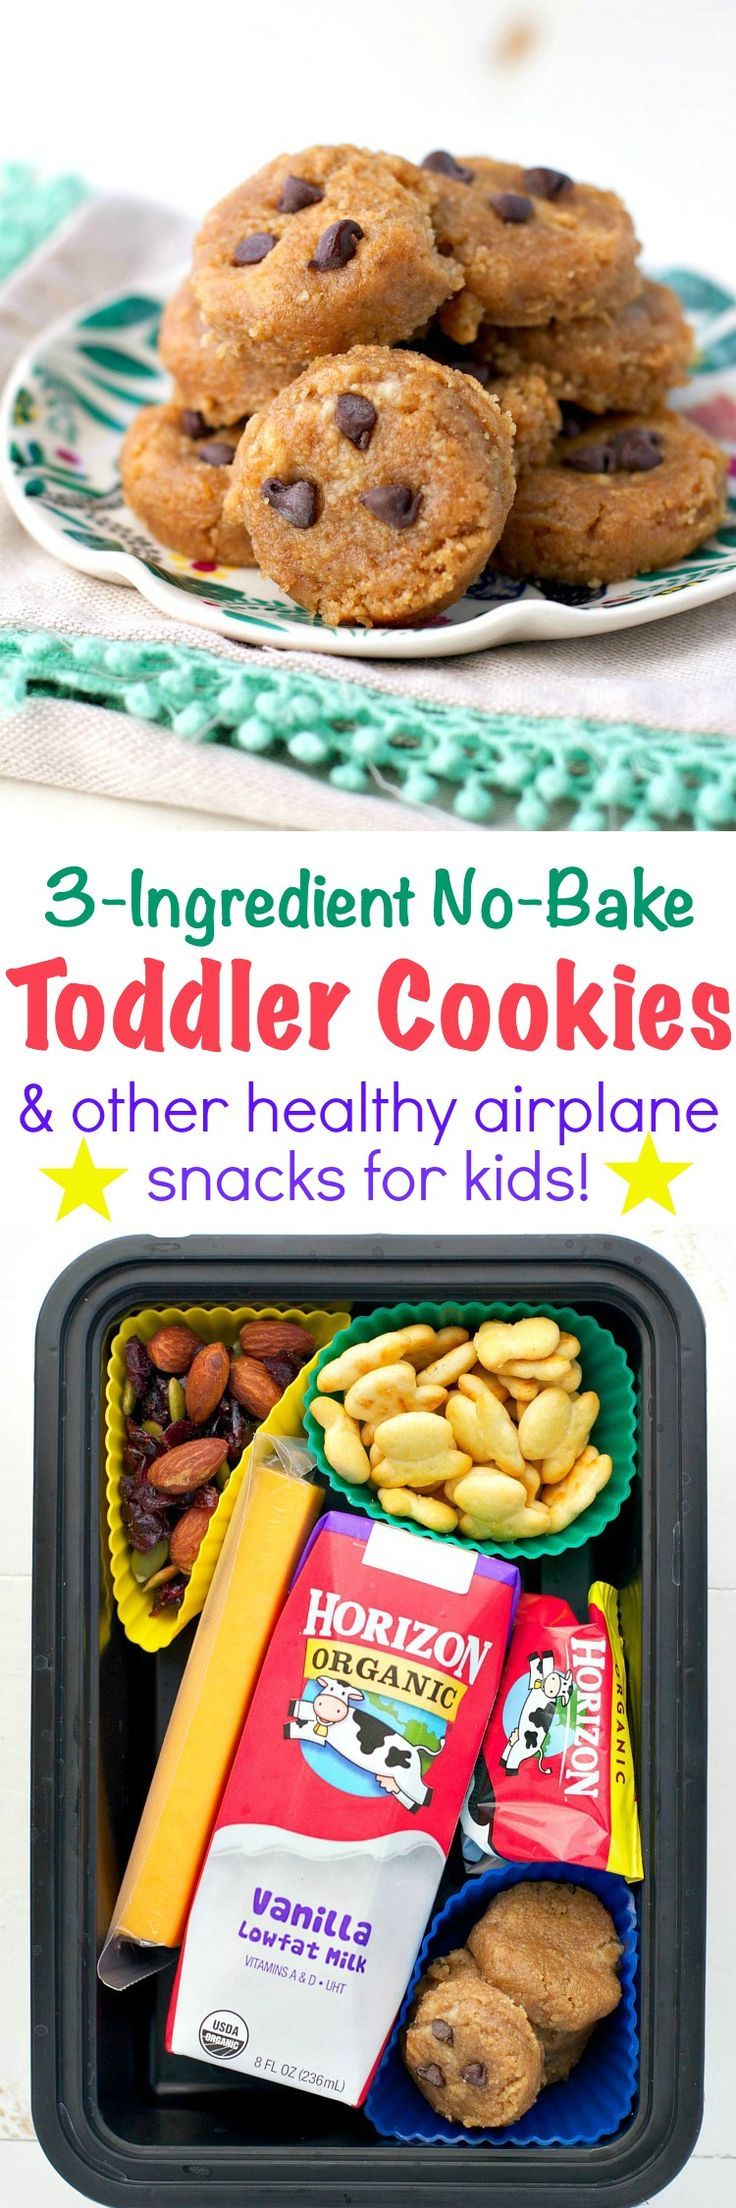 With just graham crackers, banana, and peanut butter, these 3-Ingredient No Bake Toddler Cookies are a perfect make-ahead option for lunch boxes, picnics, and summer travel. Plus, I'm sharing a few more favorite Airplane Snacks for Kids to help keep your family happy and fueled for all of your adventures! #horizonorganic @horizonorganic #ad